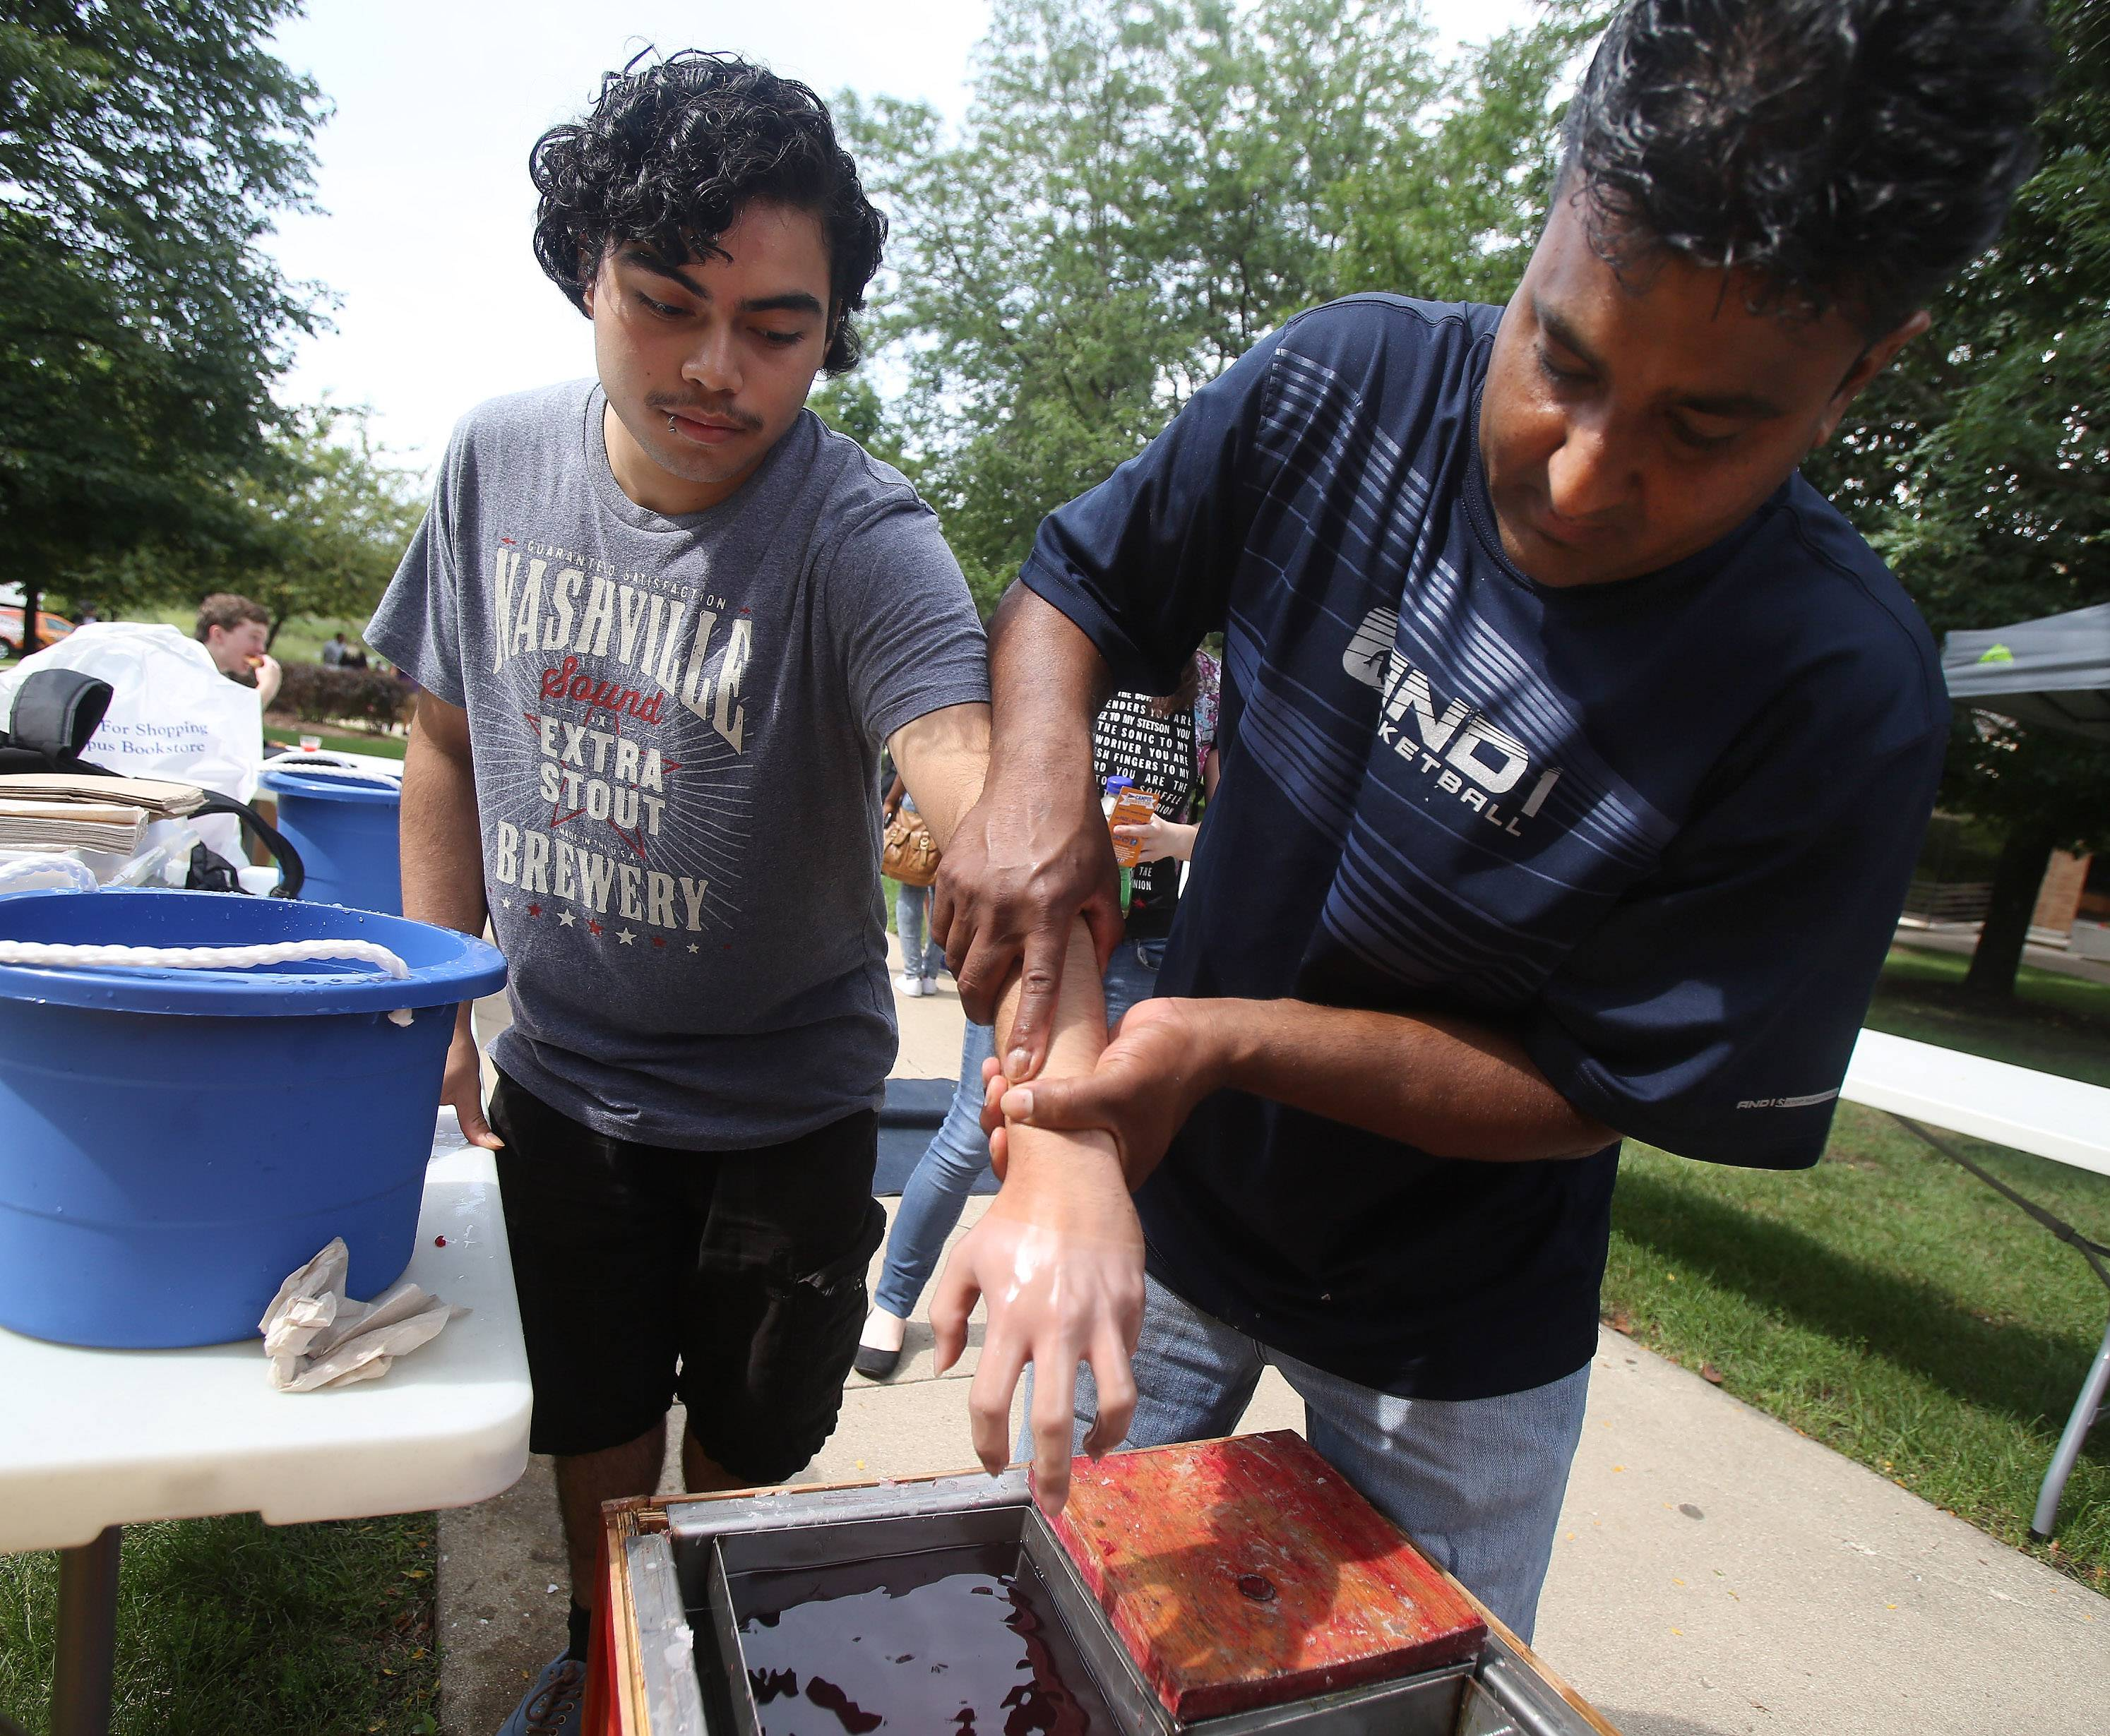 Joel Munoz of Waukegan, left, has a wax hand mold made by Gershom Rangai of Leaping Lizards Entertainment on Monday, the first day of classes at the College of Lake County. CLC Student Activities offered free pizza, popcorn, sandwiches and soda pop, as well as a climbing wall and free wax hands.